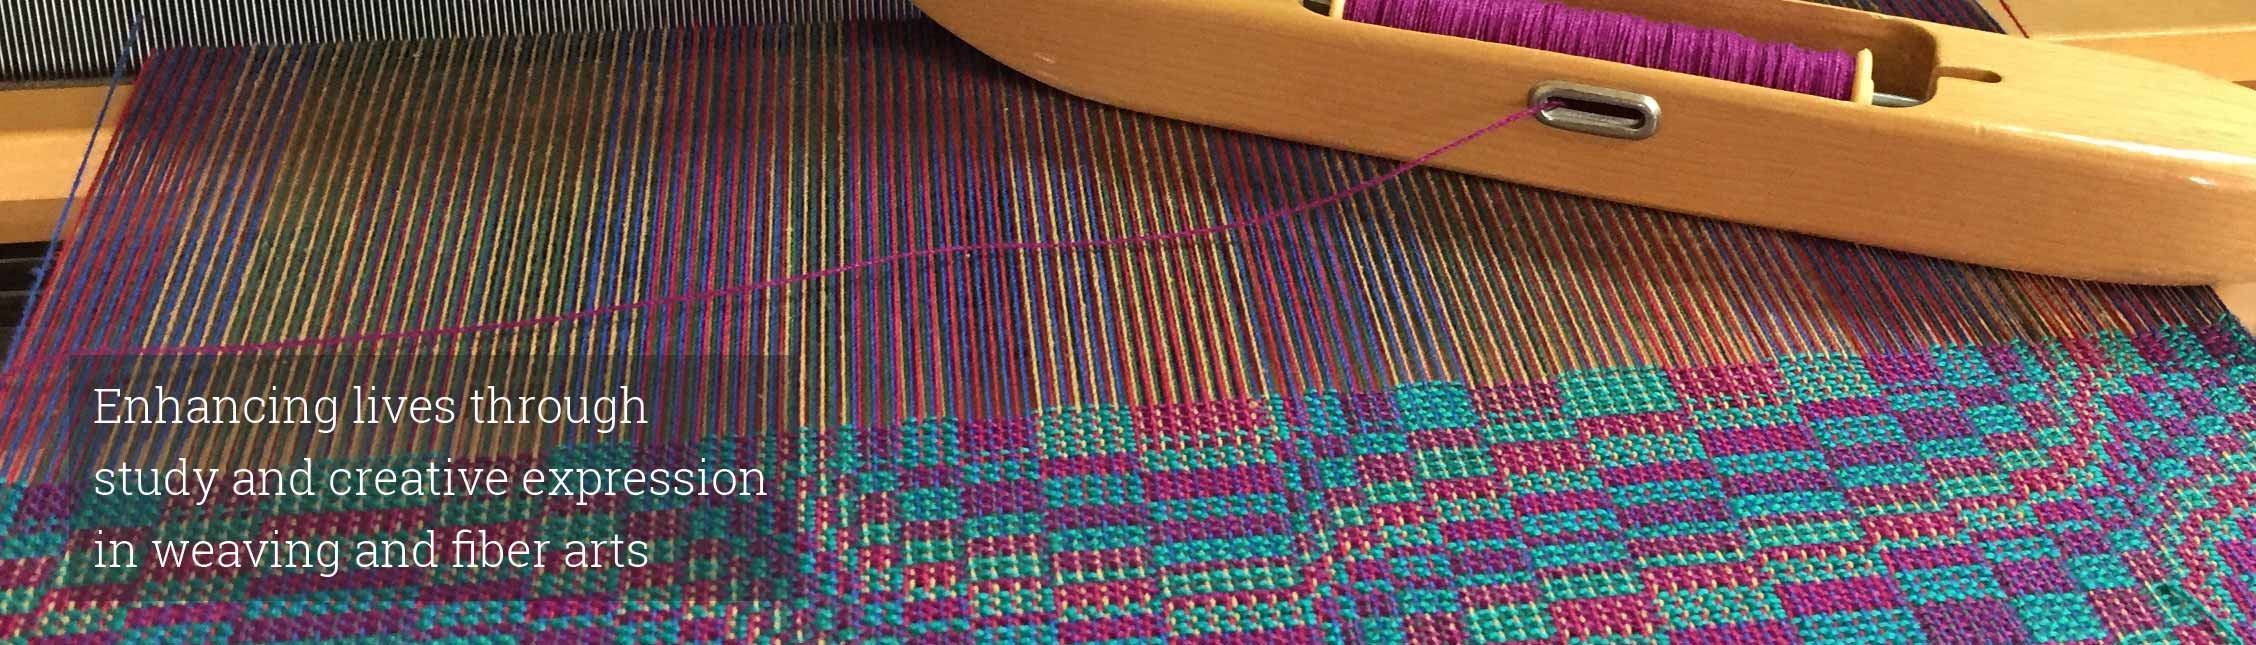 Enhancing lives through study and creative expression in weaving and fiber arts